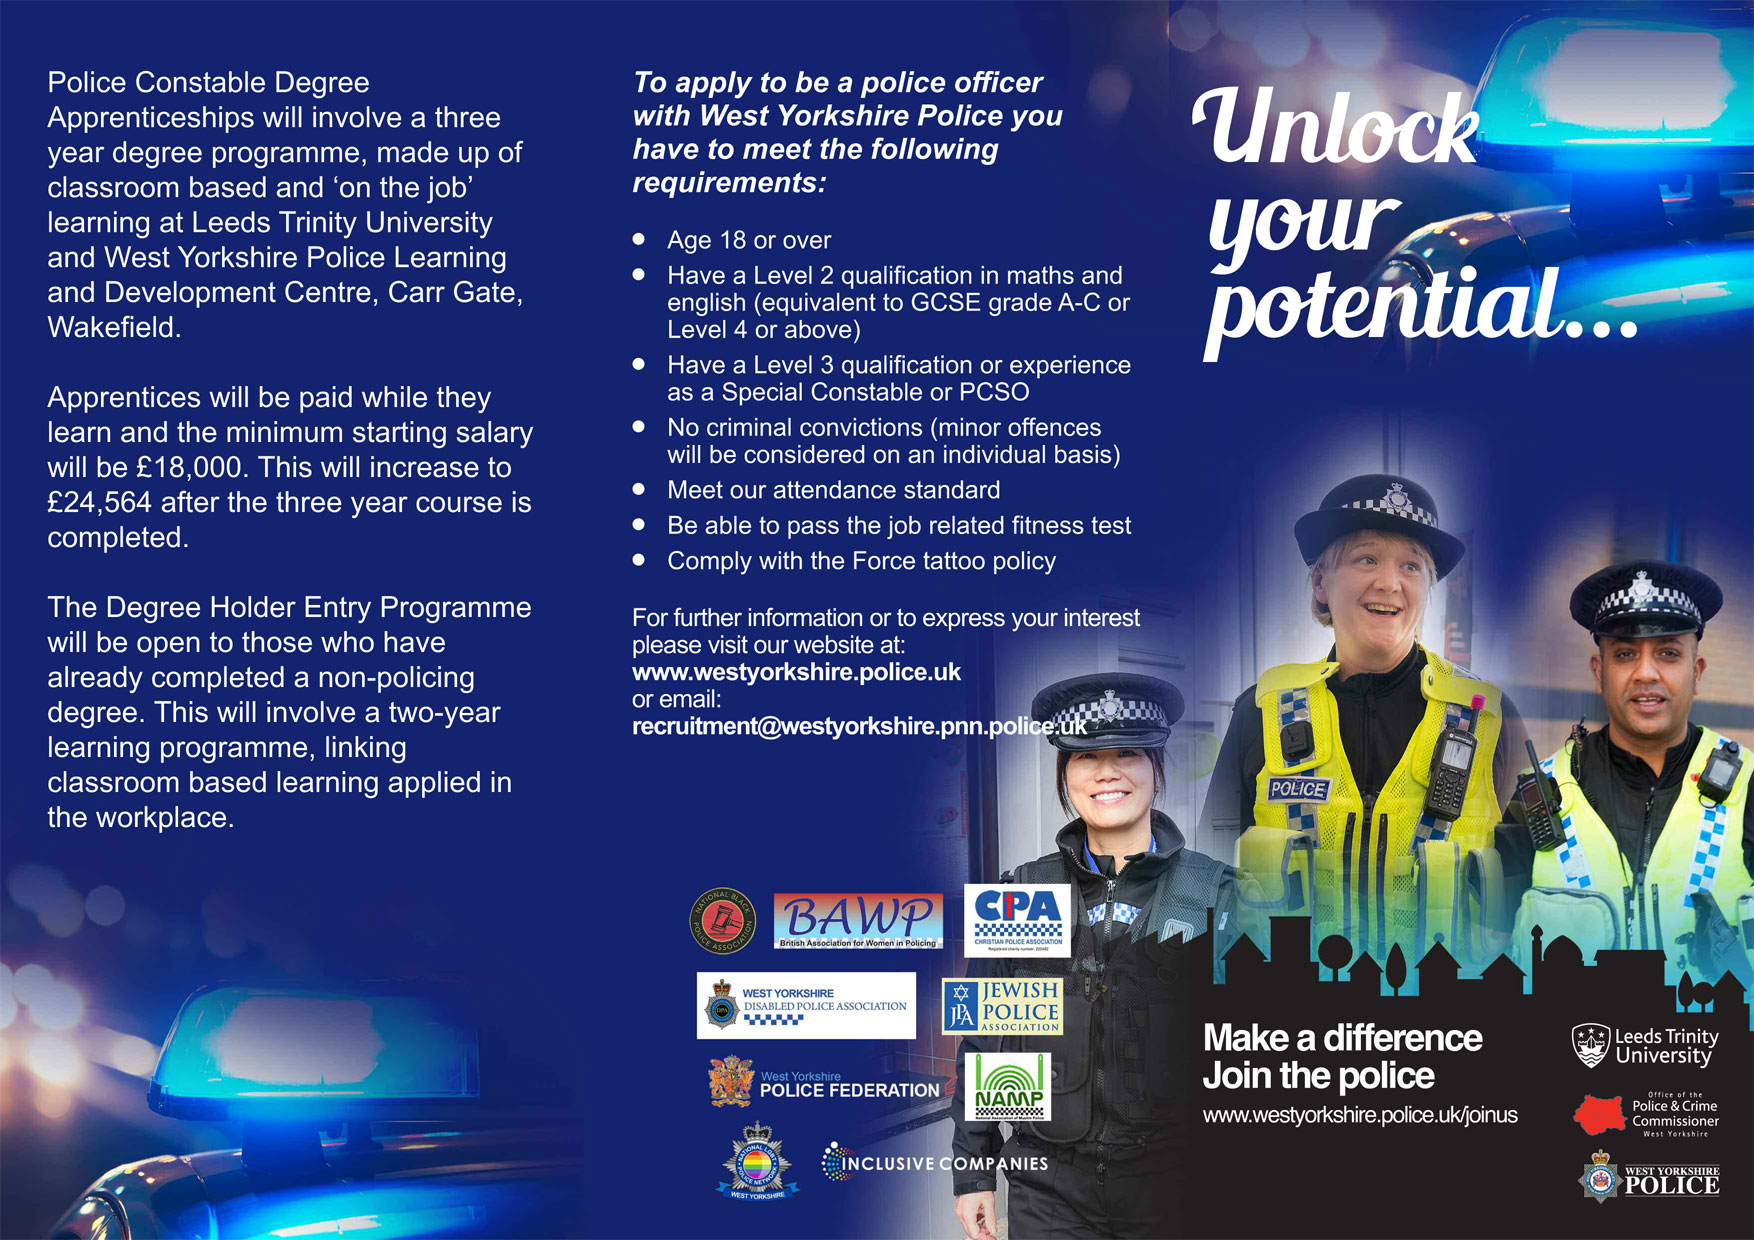 Police Officers | West Yorkshire Police